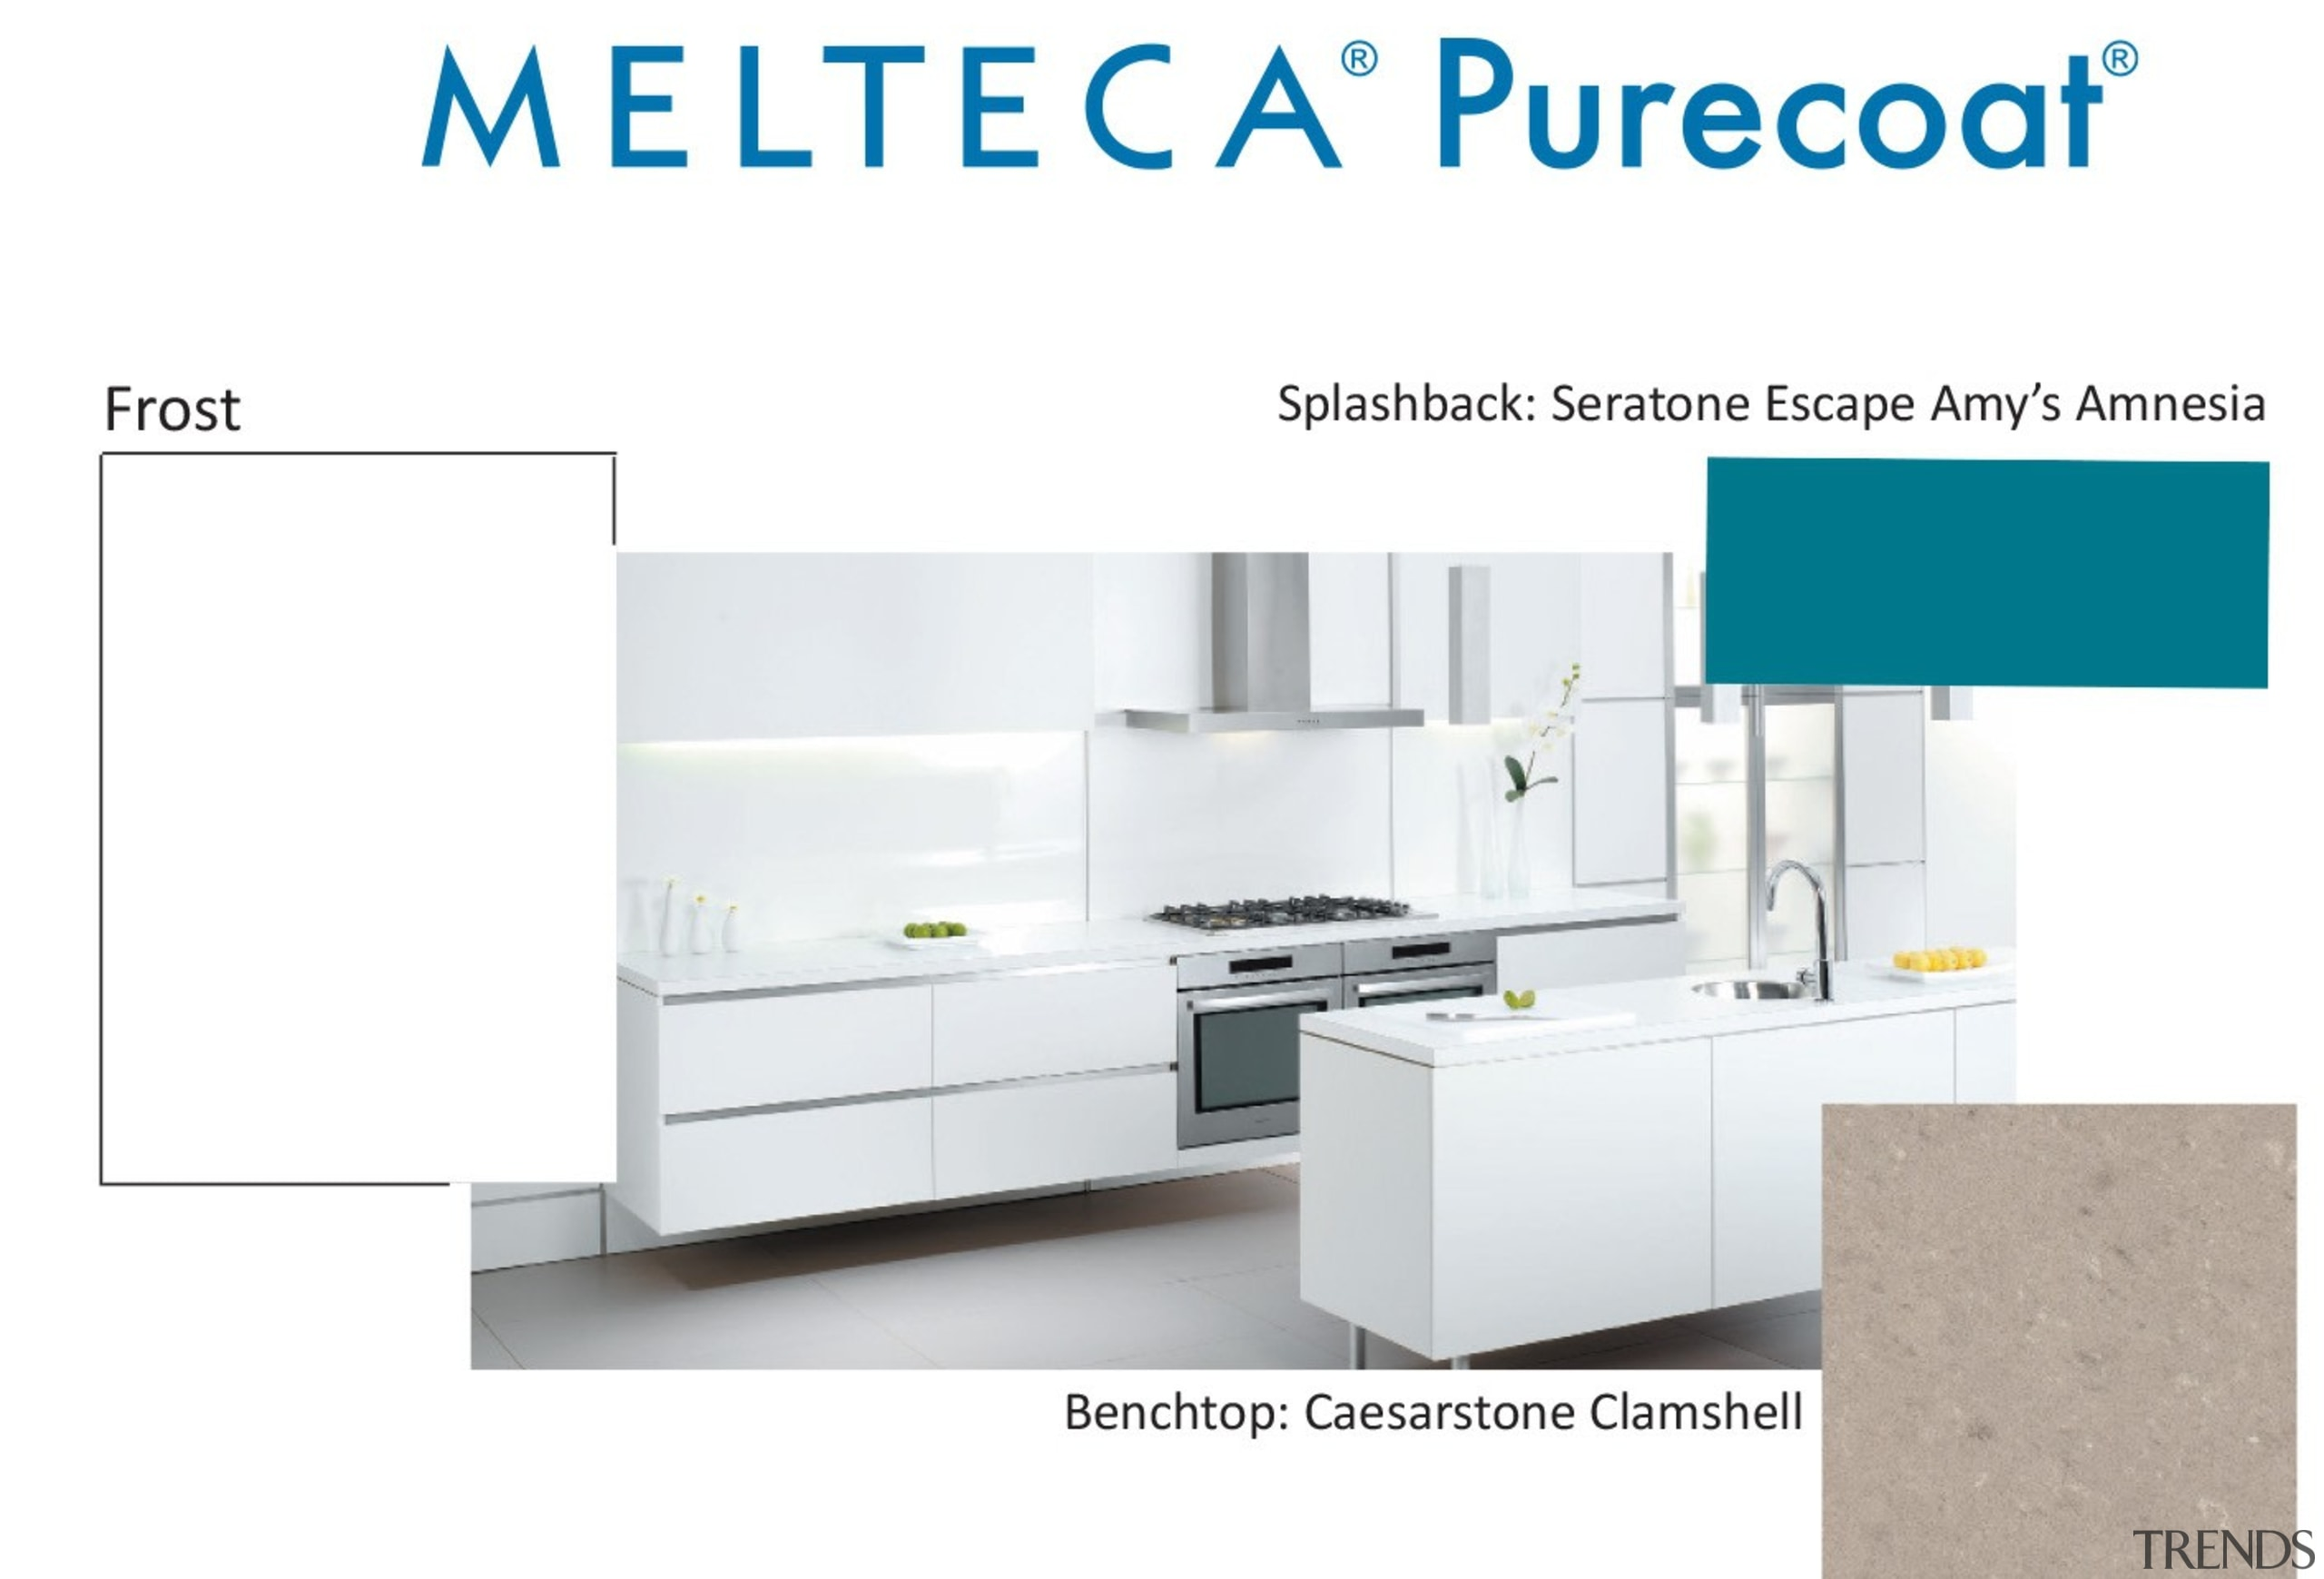 New Zealand made Melteca Purecoat surfaces utilise cutting-edge bathroom accessory, furniture, kitchen, line, product, product design, table, white